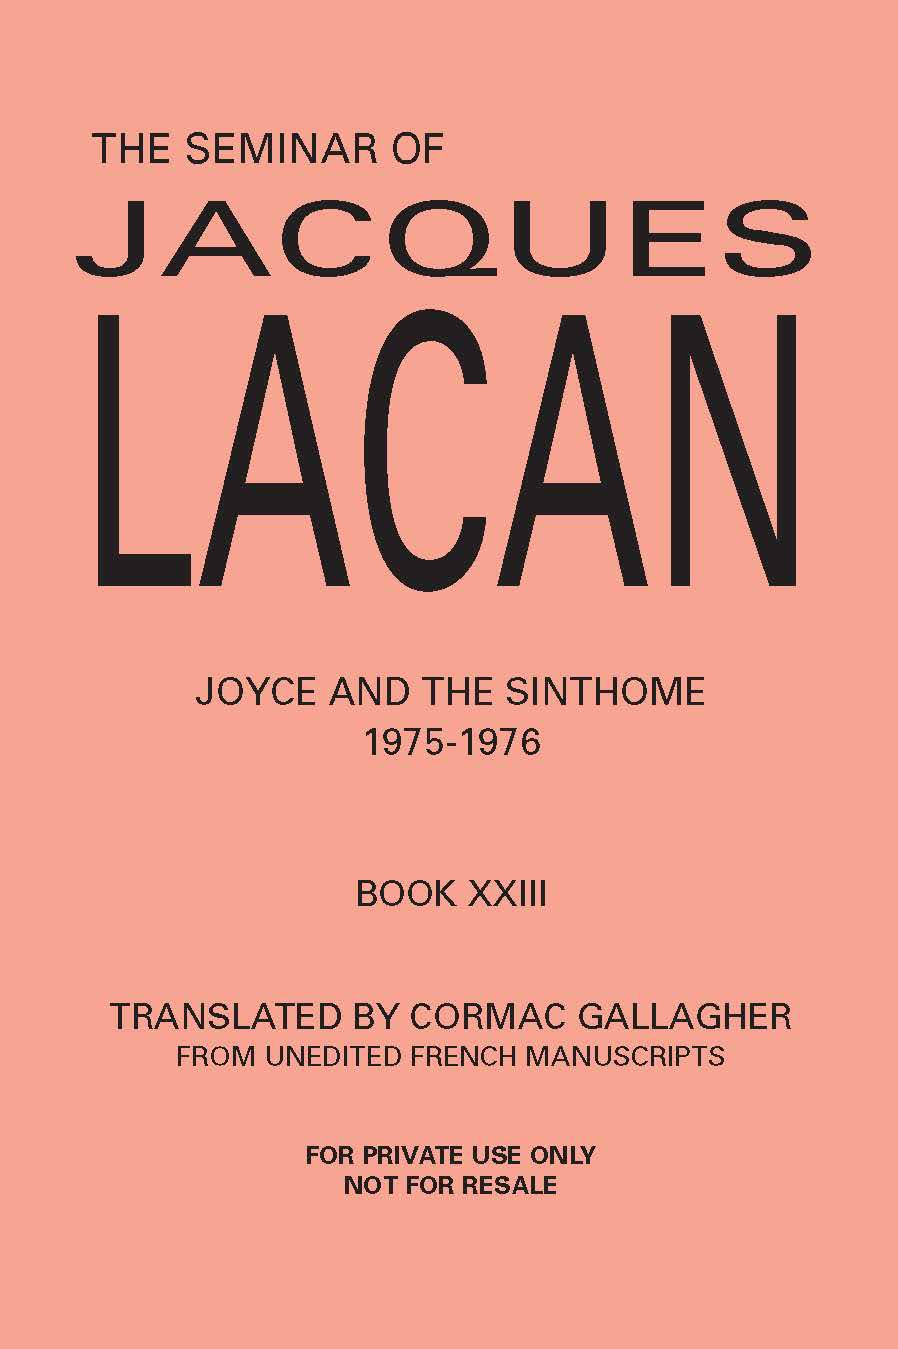 The Seminar of Jacques Lacan XXIII: Joyce and the Sinthome 1975-1976